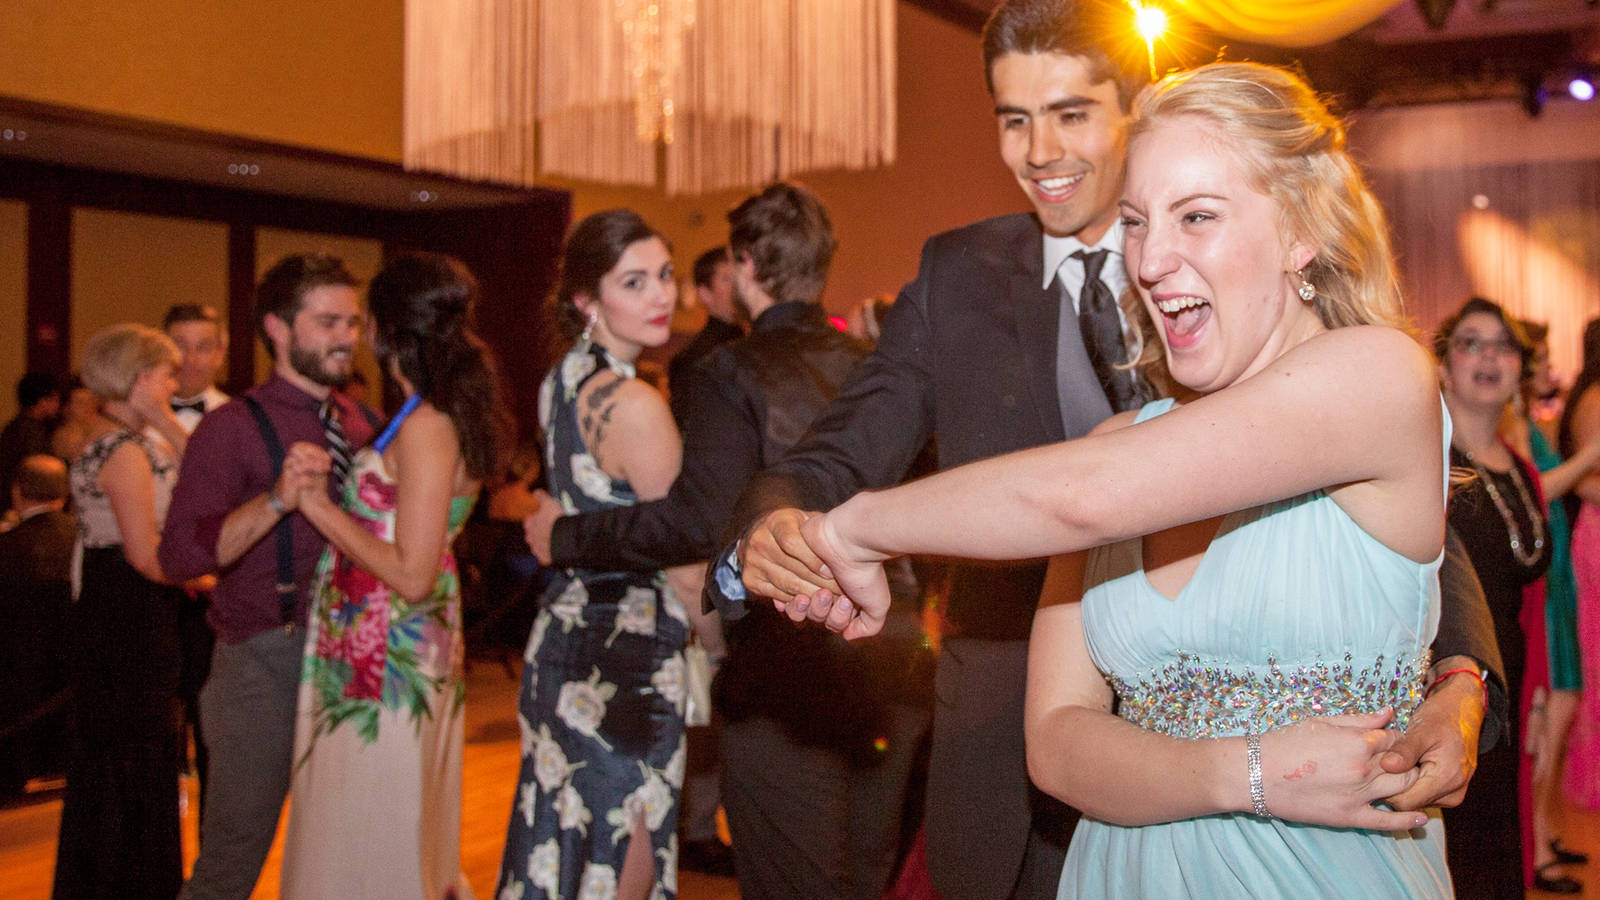 Dancers enjoy the festivities at the 2016 Viennese Ball